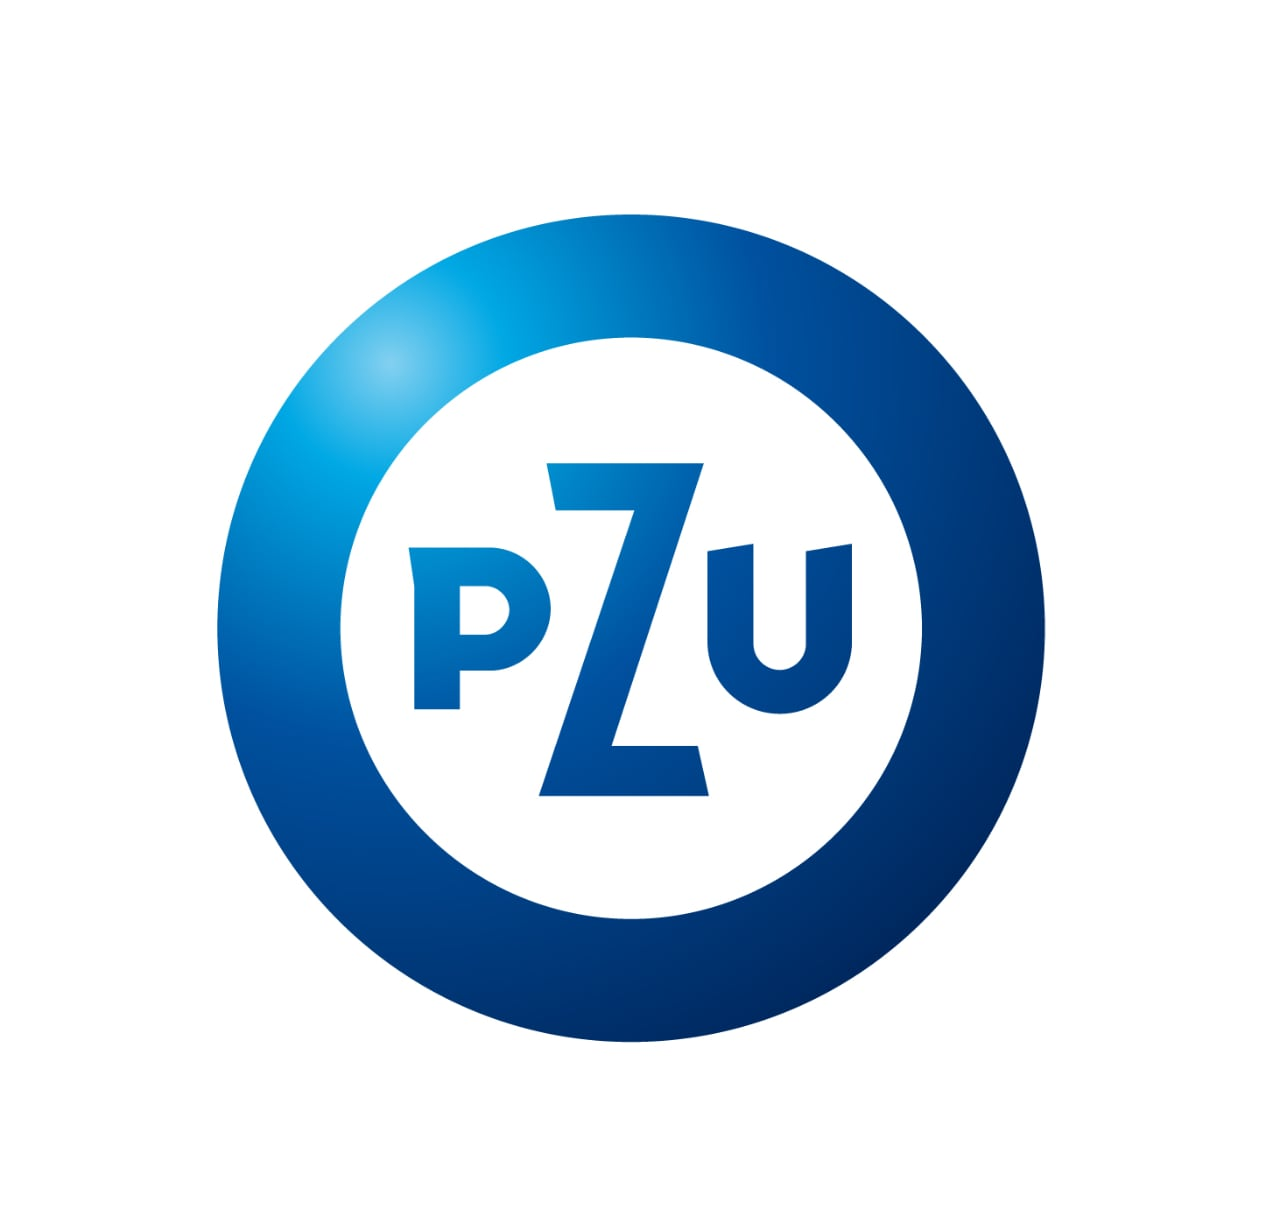 SAS Enterprise Guide w PZU SA